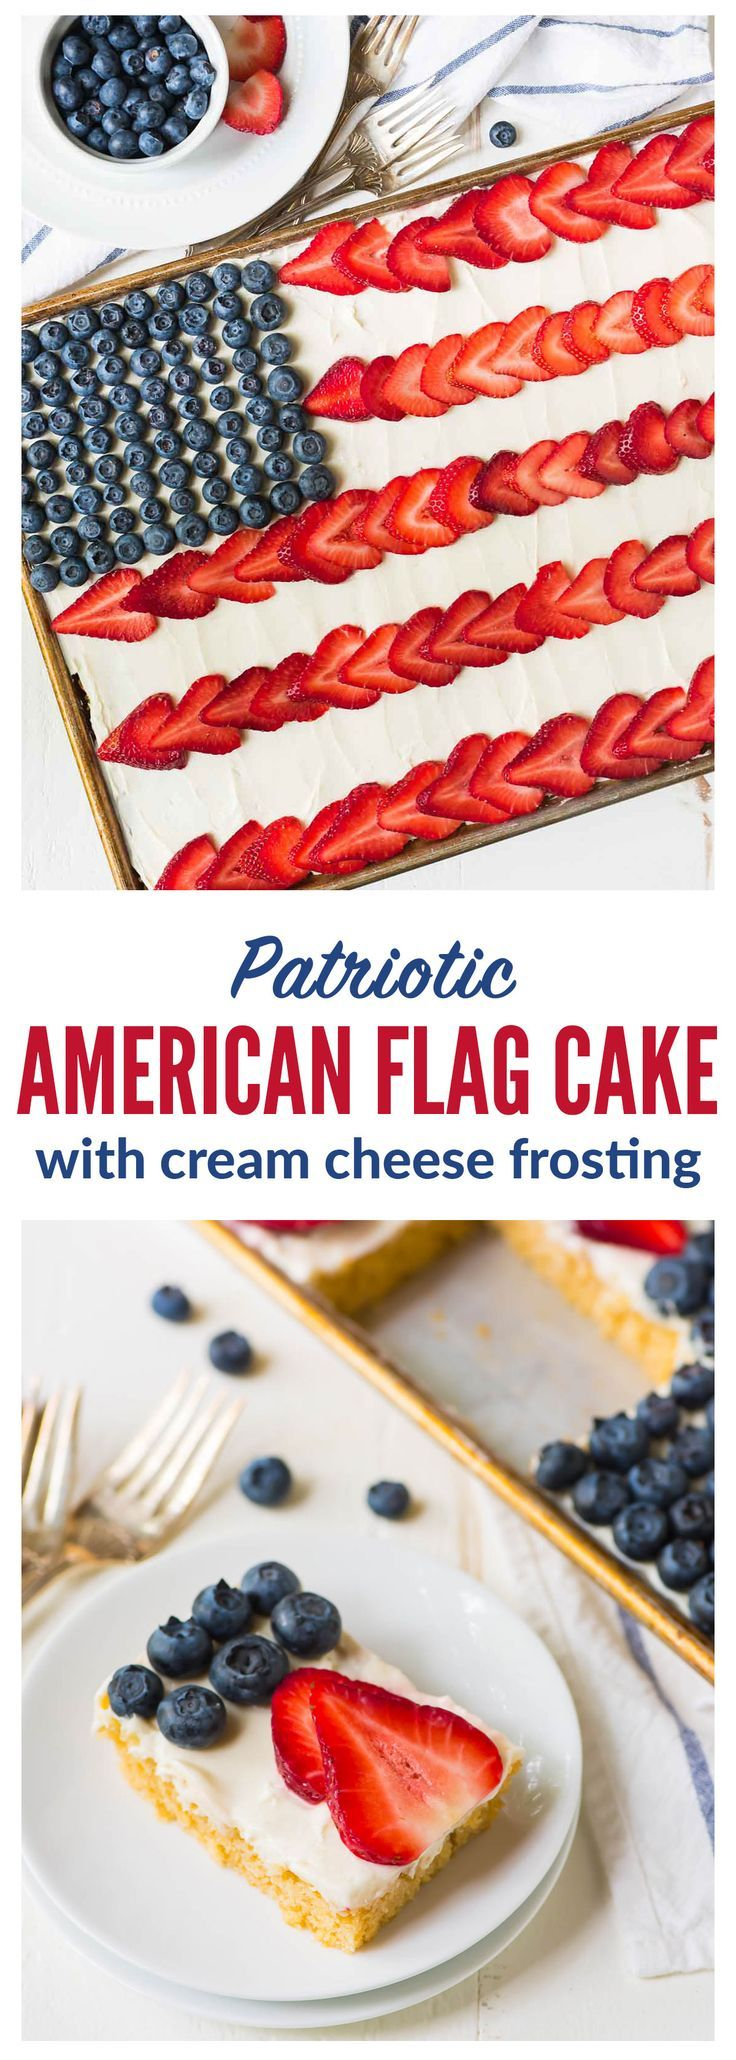 American Flag Cake. Made with REAL ingredients! From scratch fluffy yellow sheet cake, topped with Greek yogurt cream cheese frosting, fresh strawberry, and blueberry to look like an American flag. The perfect patriotic dessert recipe for the Fourth of July, Memorial Day, and Labor Day. Recipe at wellplated.com | @wellplated